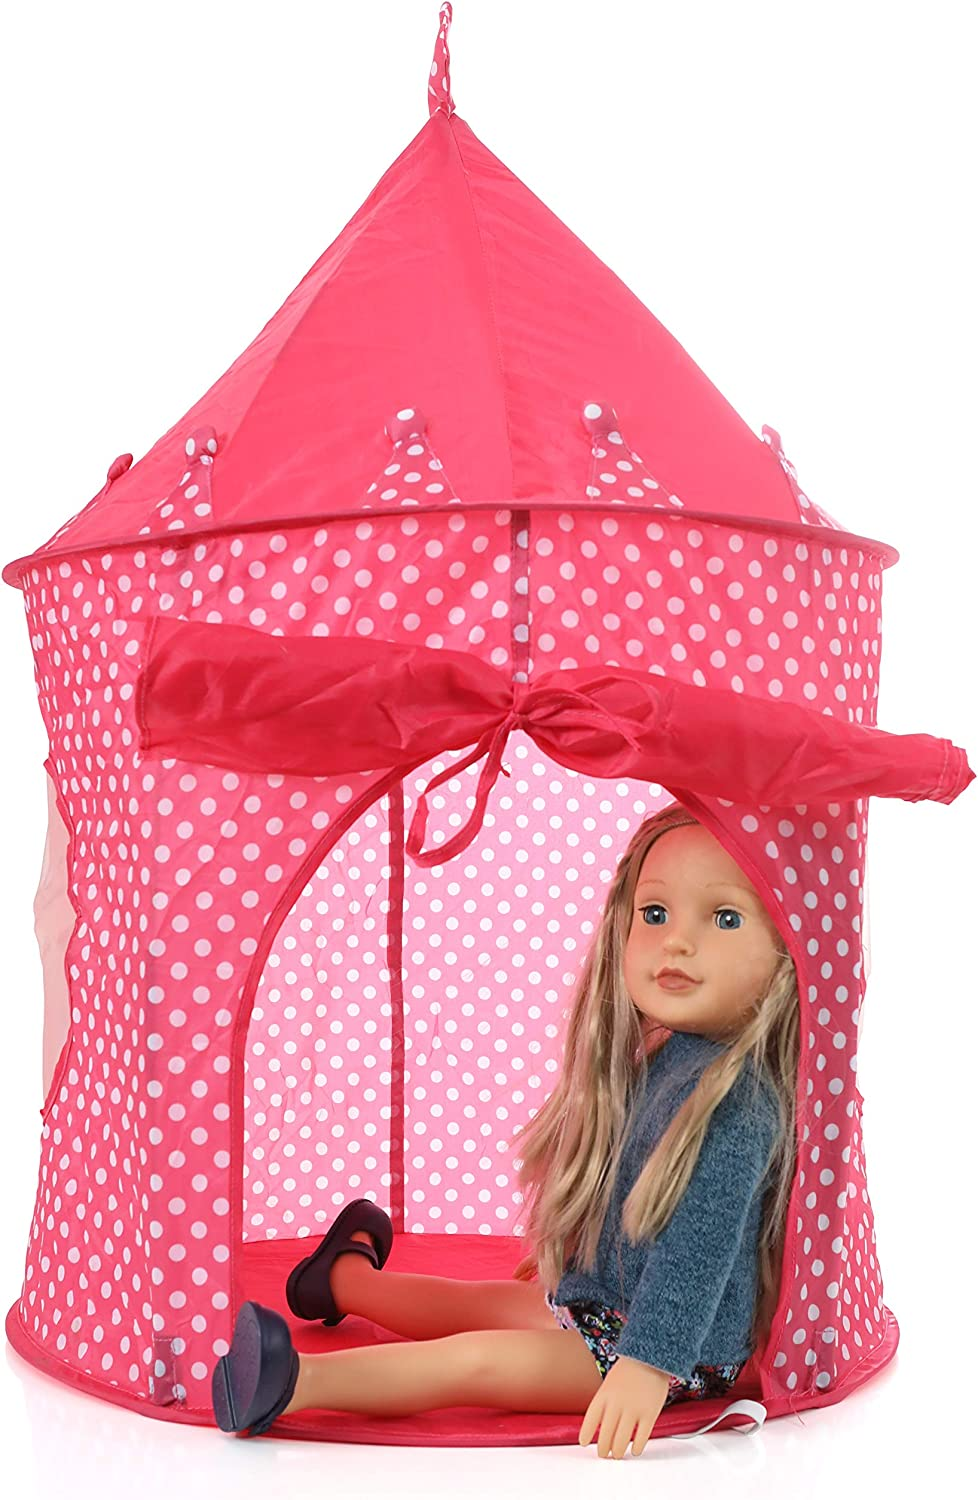 Beverly Hills 18 Inch Doll Accessories Princess Doll Popup Camping Tent Playset, for Indoor and Outdoor Use, Fits 2 18 Inch Dolls